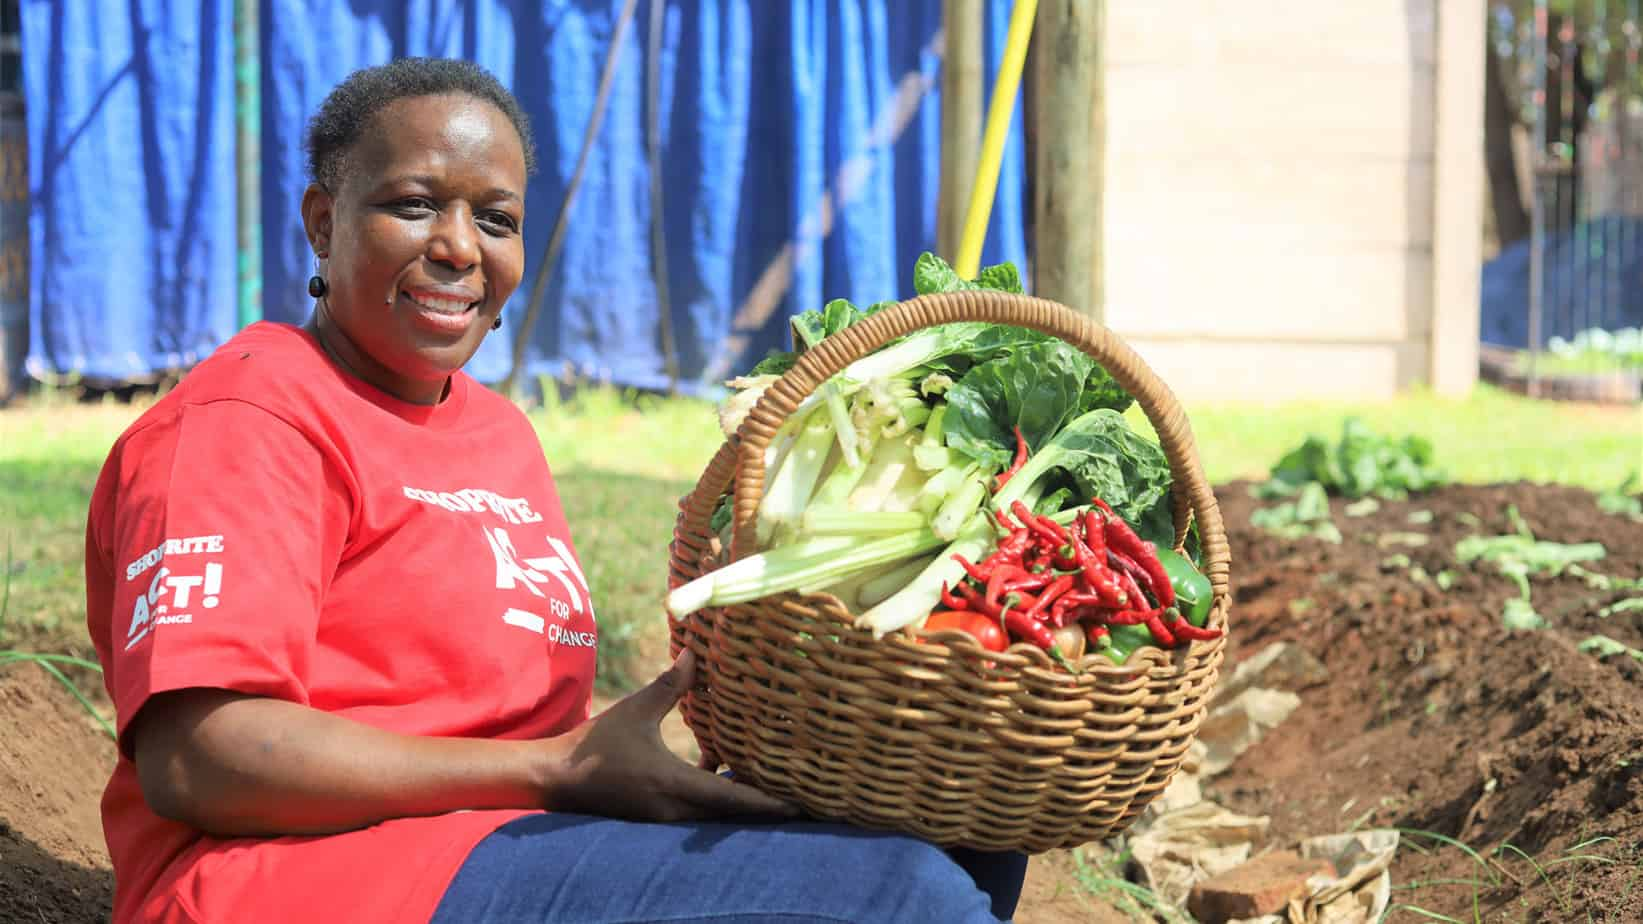 Nelly Komape desire to be an example to her community and help feed those in need resulted in the birth of a sizeable backyard garden feeding members of her community. Photo: Shoprite/Supplied